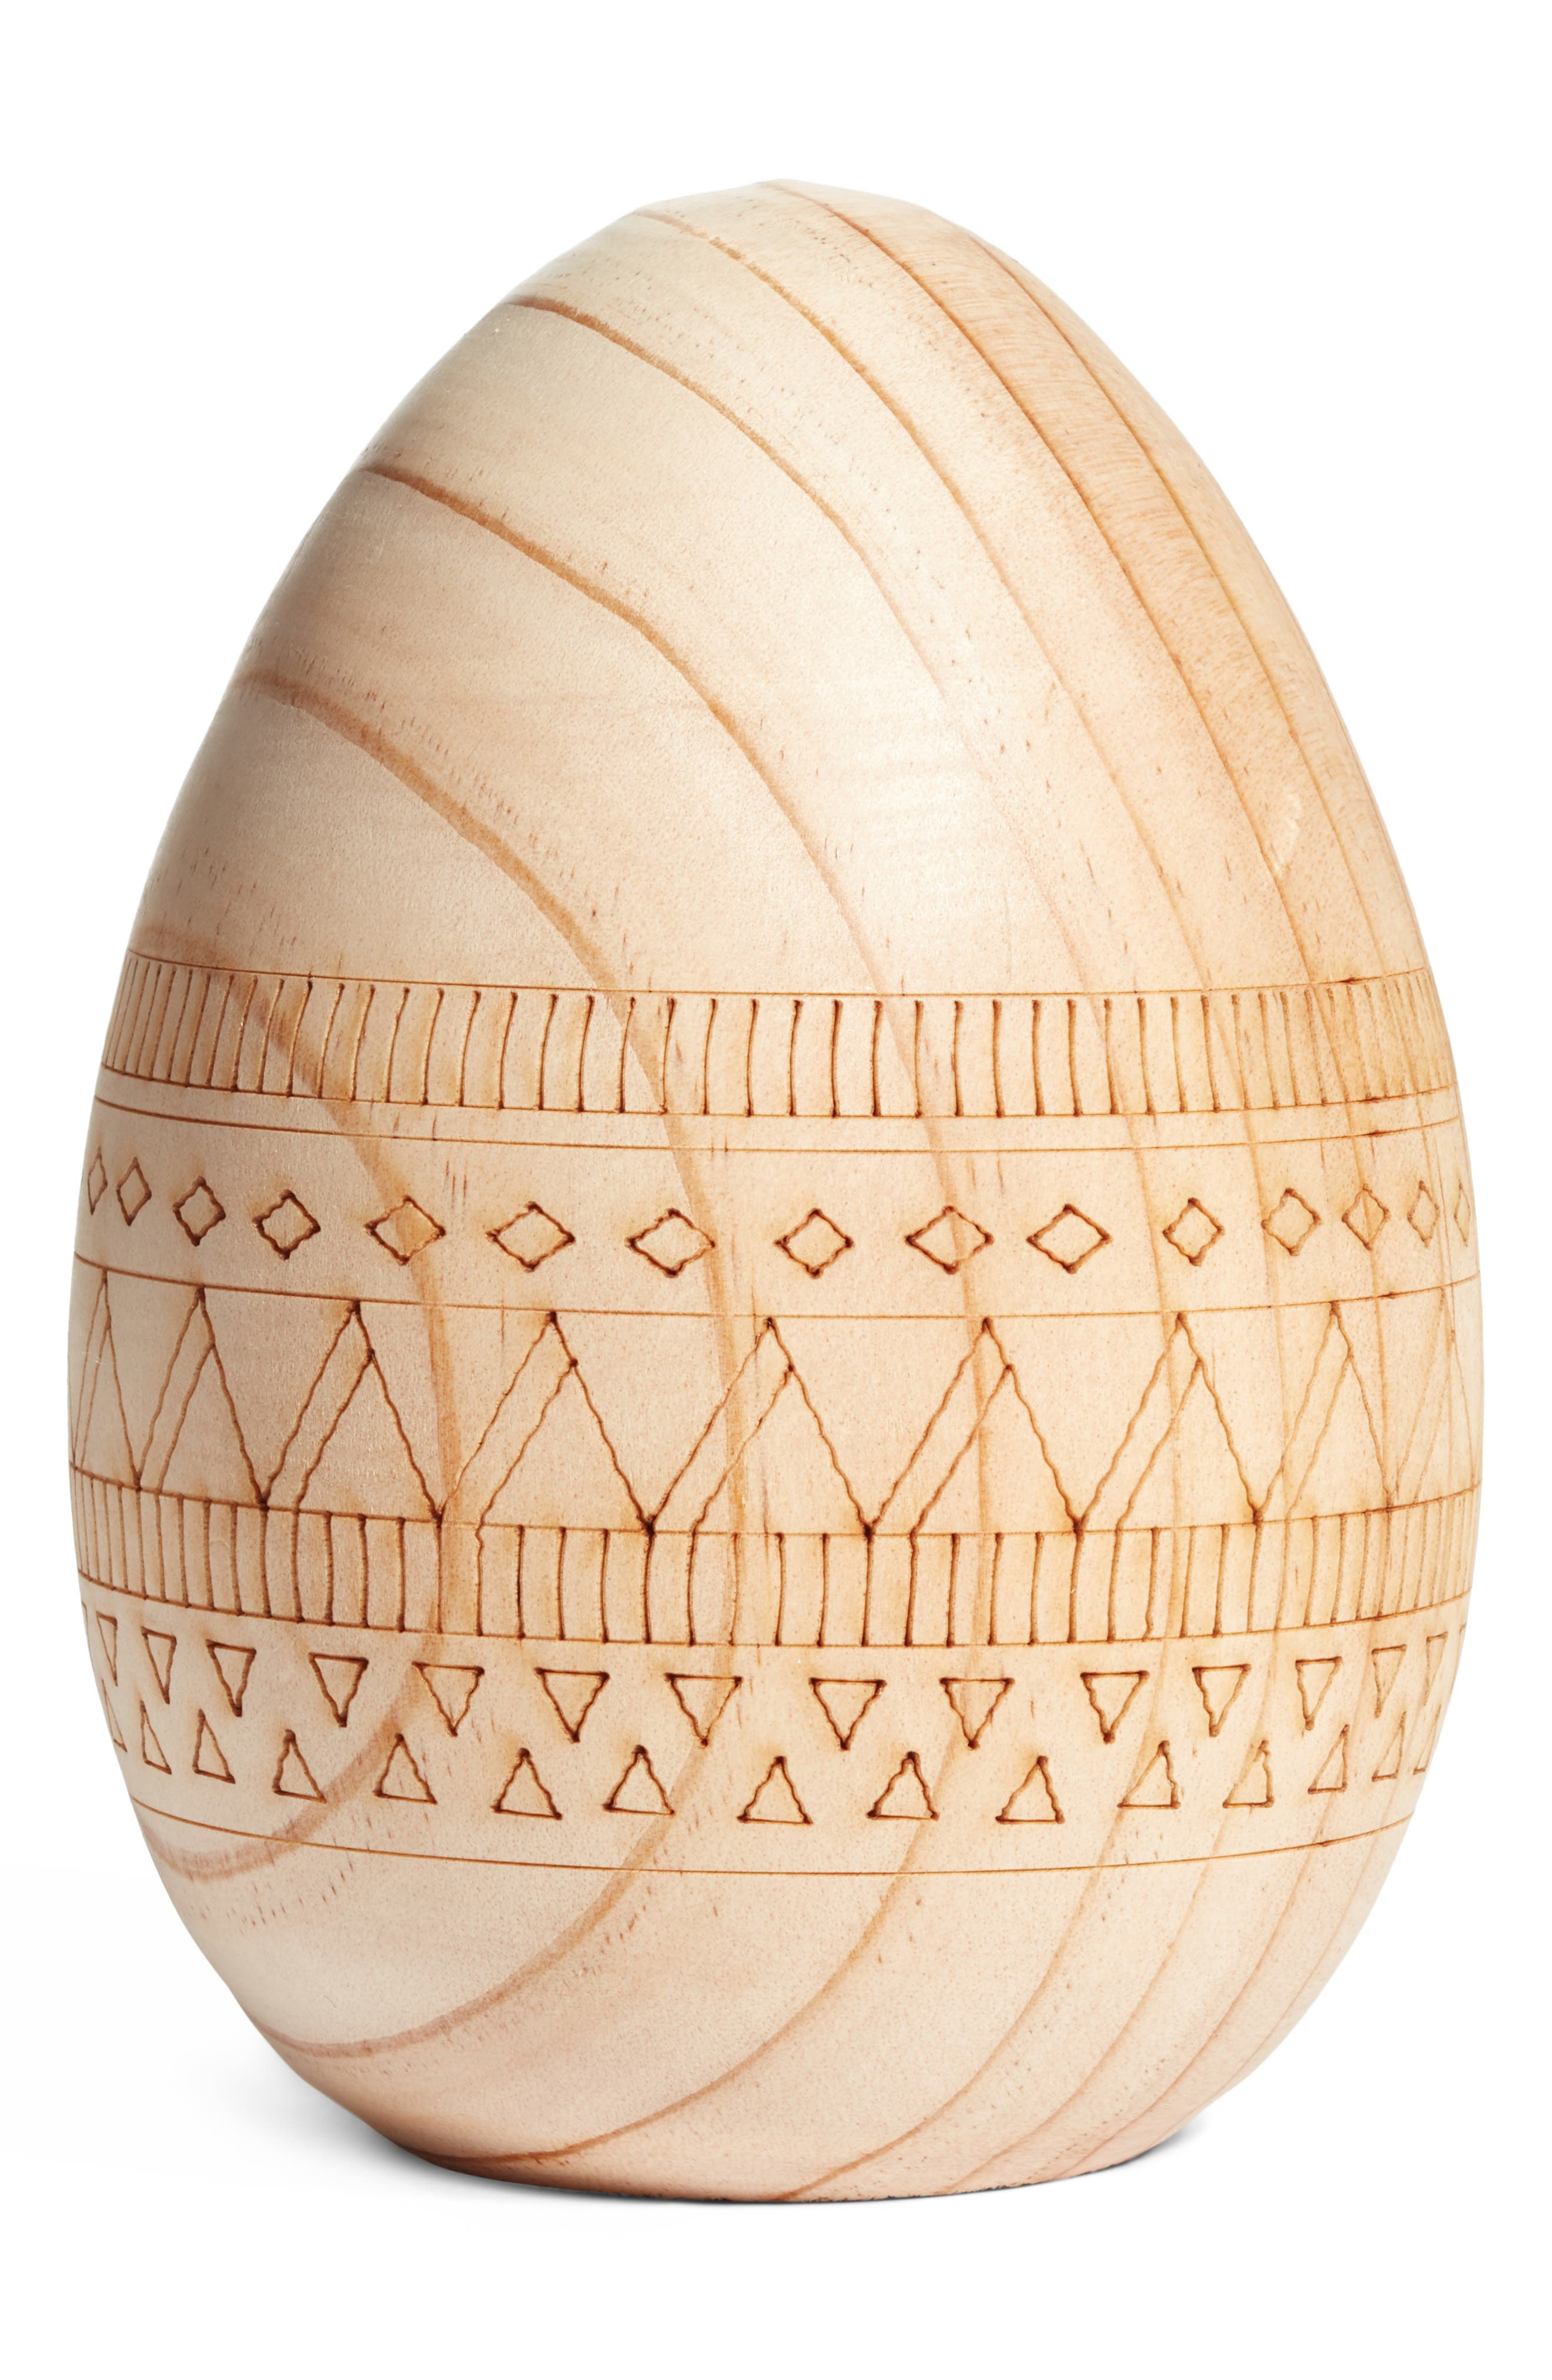 ACCENT DECOR Loco Egg Carved Wooden Egg